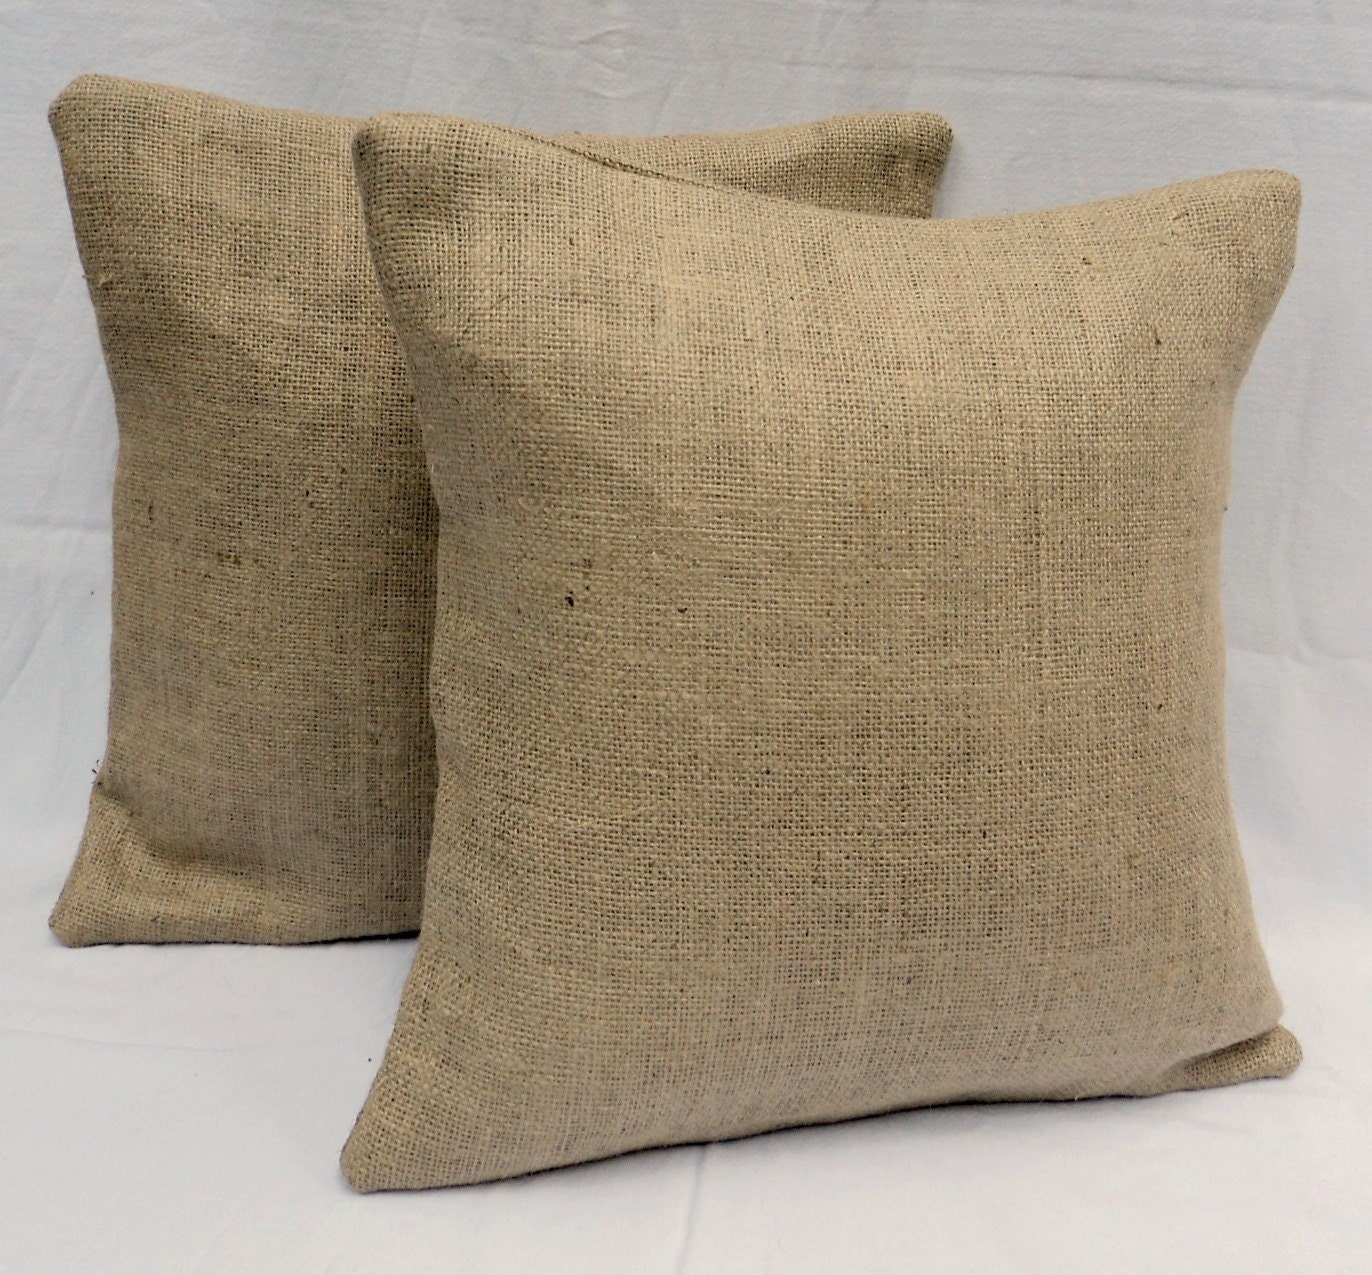 housewarming throw burlap embroidered listing pillow home sweet il fullxfull